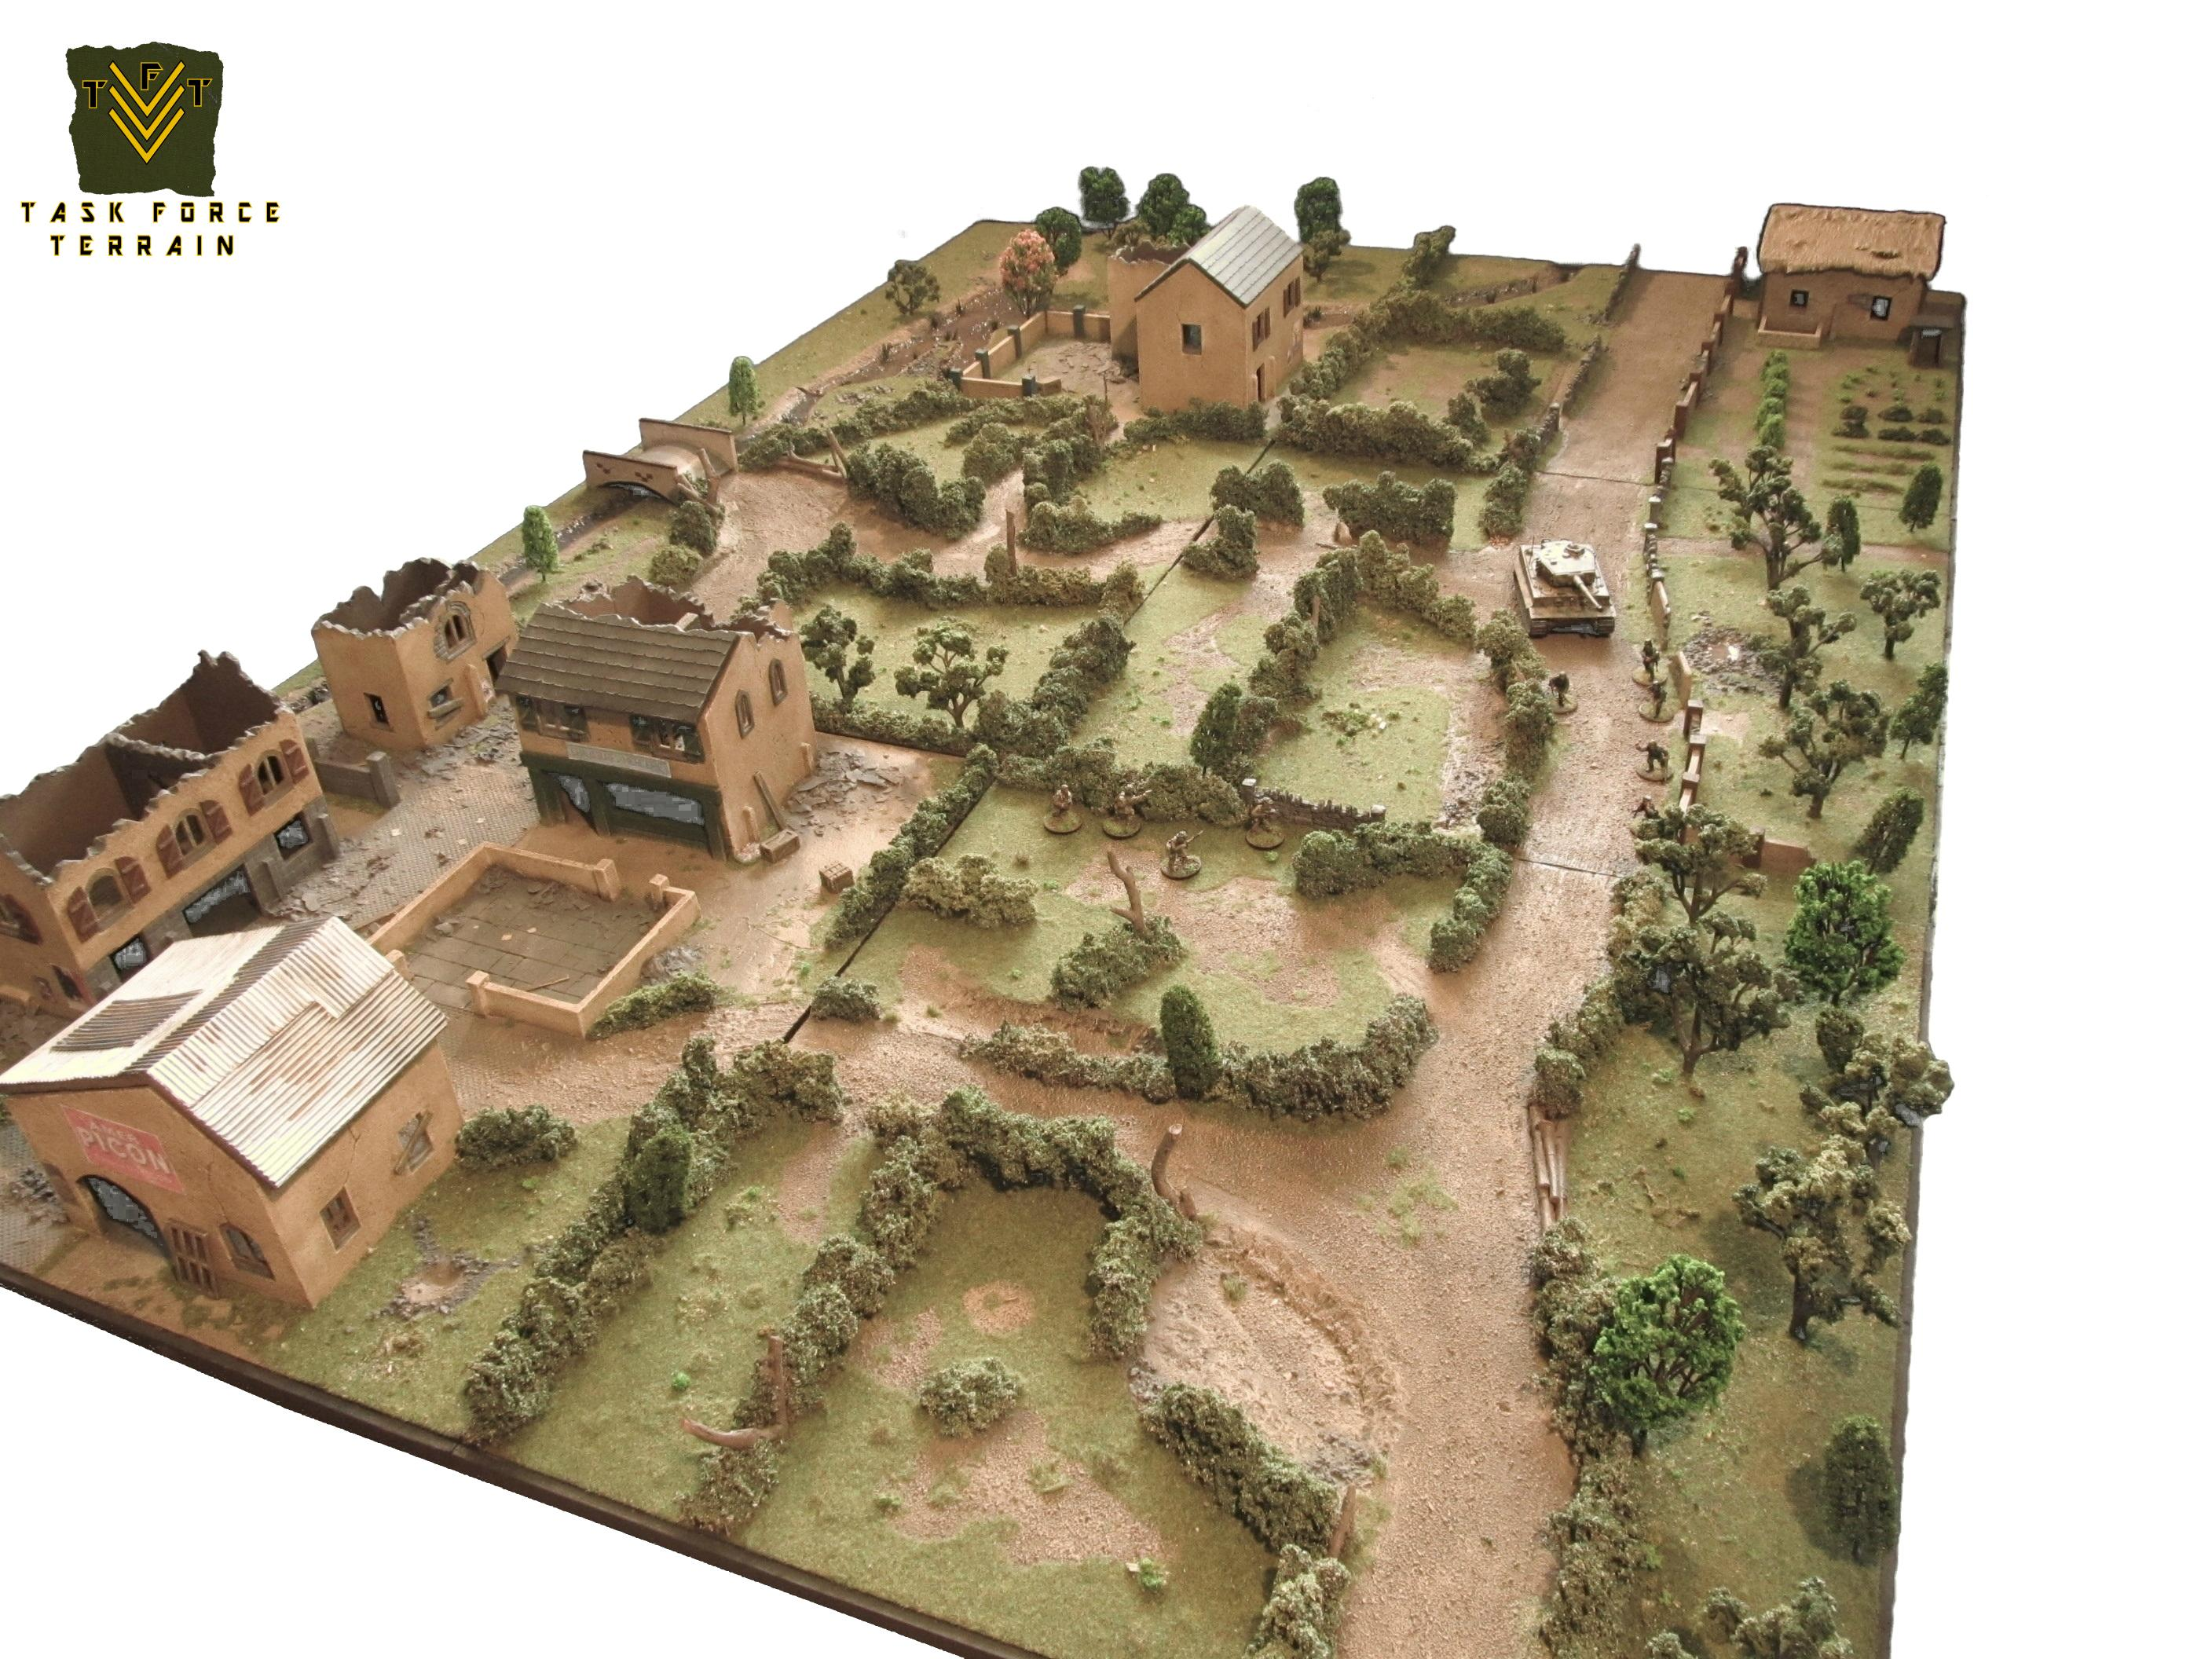 28mm, Buildings, Game Table, Gametable, Terrain, Wargames, World War 2